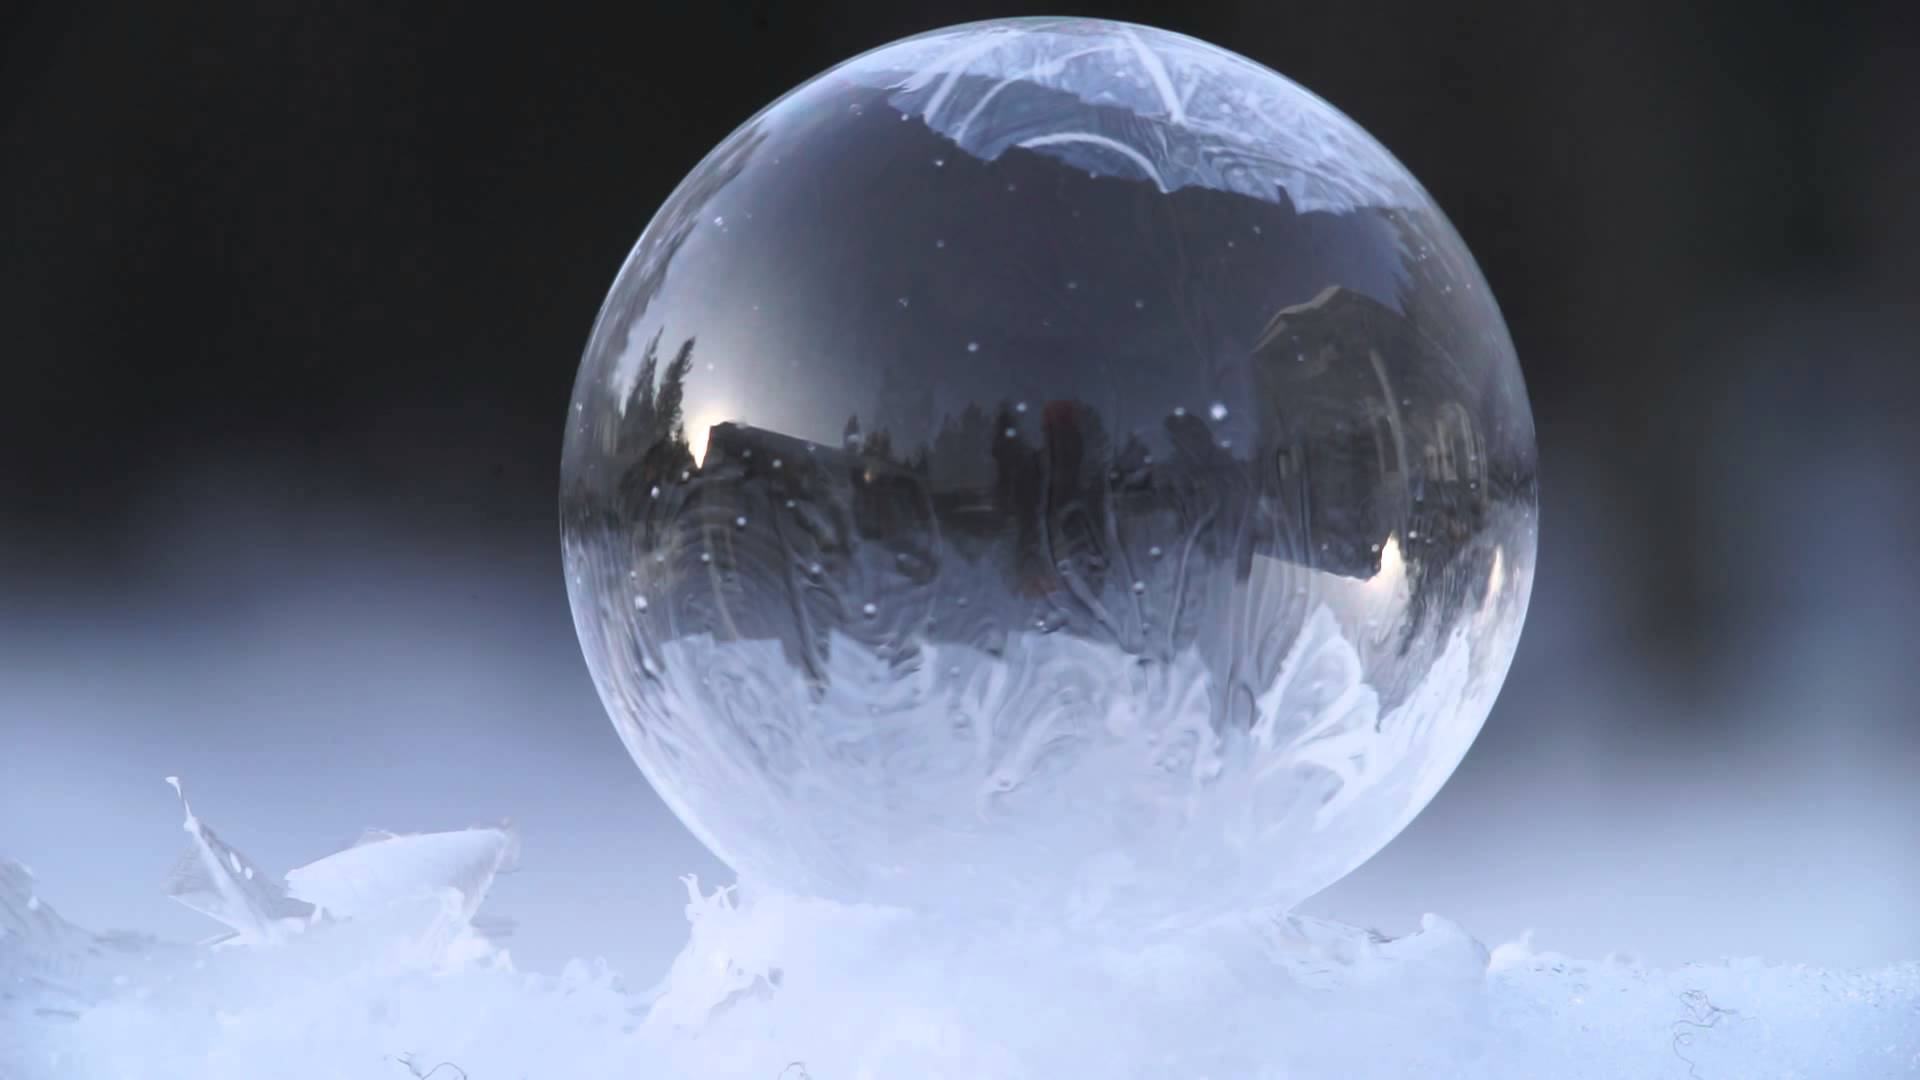 Frozen Bubbles Wallpapers High Quality Download Free